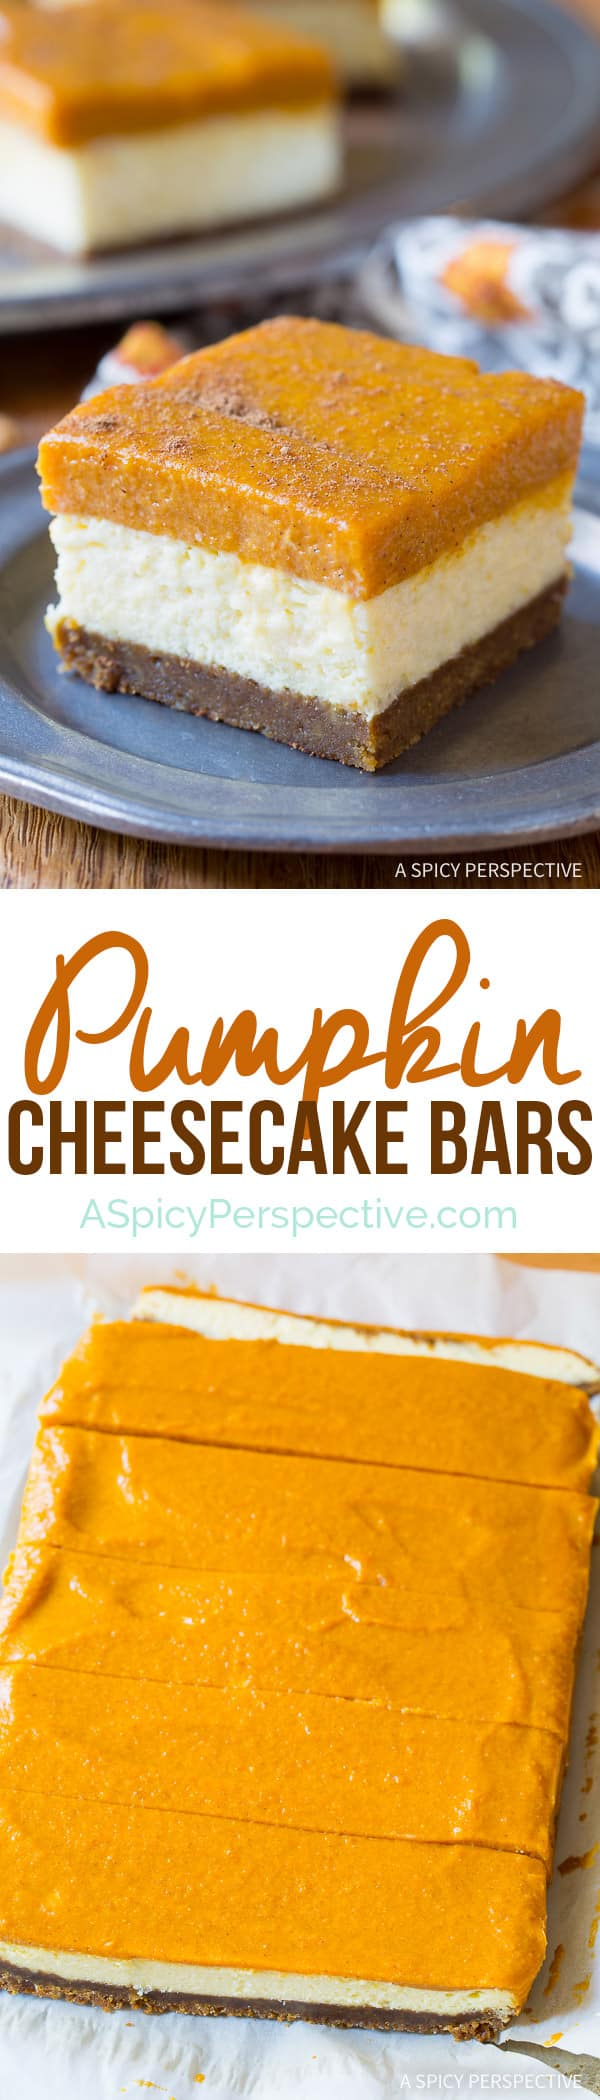 You will not believe these amazing Layered Pumpkin Cheesecake Bars on ASpicyPerspective.com